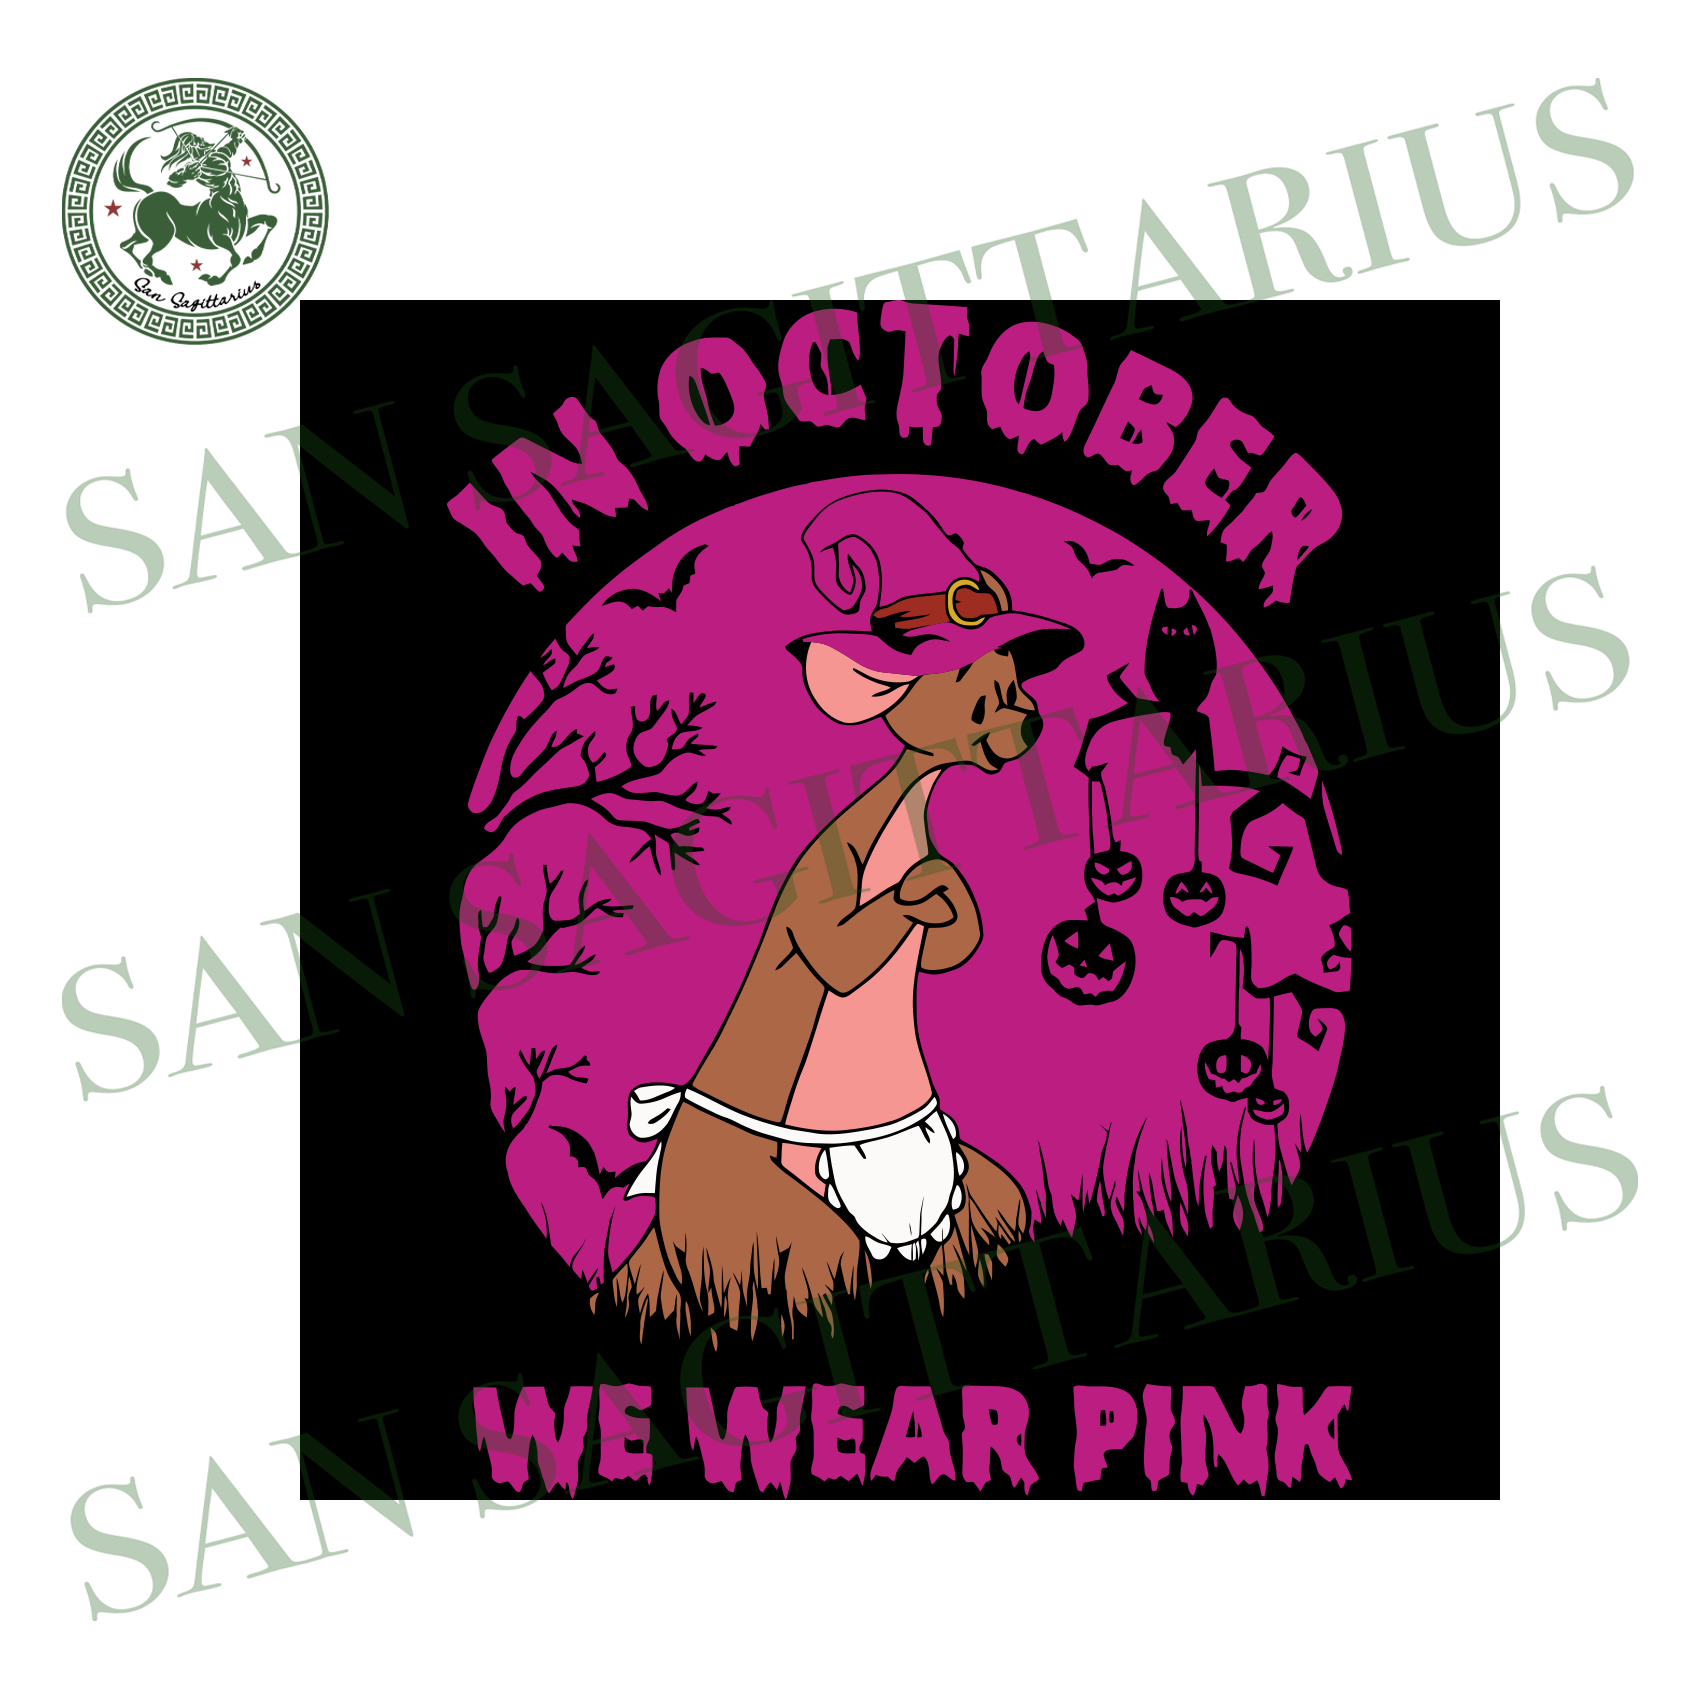 Kangaroo Mom In October We Wear Pink, Halloween Svg, Happy Halloween, Halloween Gift, Halloween Shirt, Halloween Icon, Halloween Vector, Nightmare Svg, Kangaroo Svg, Kangaroo Mom, Disney Svg